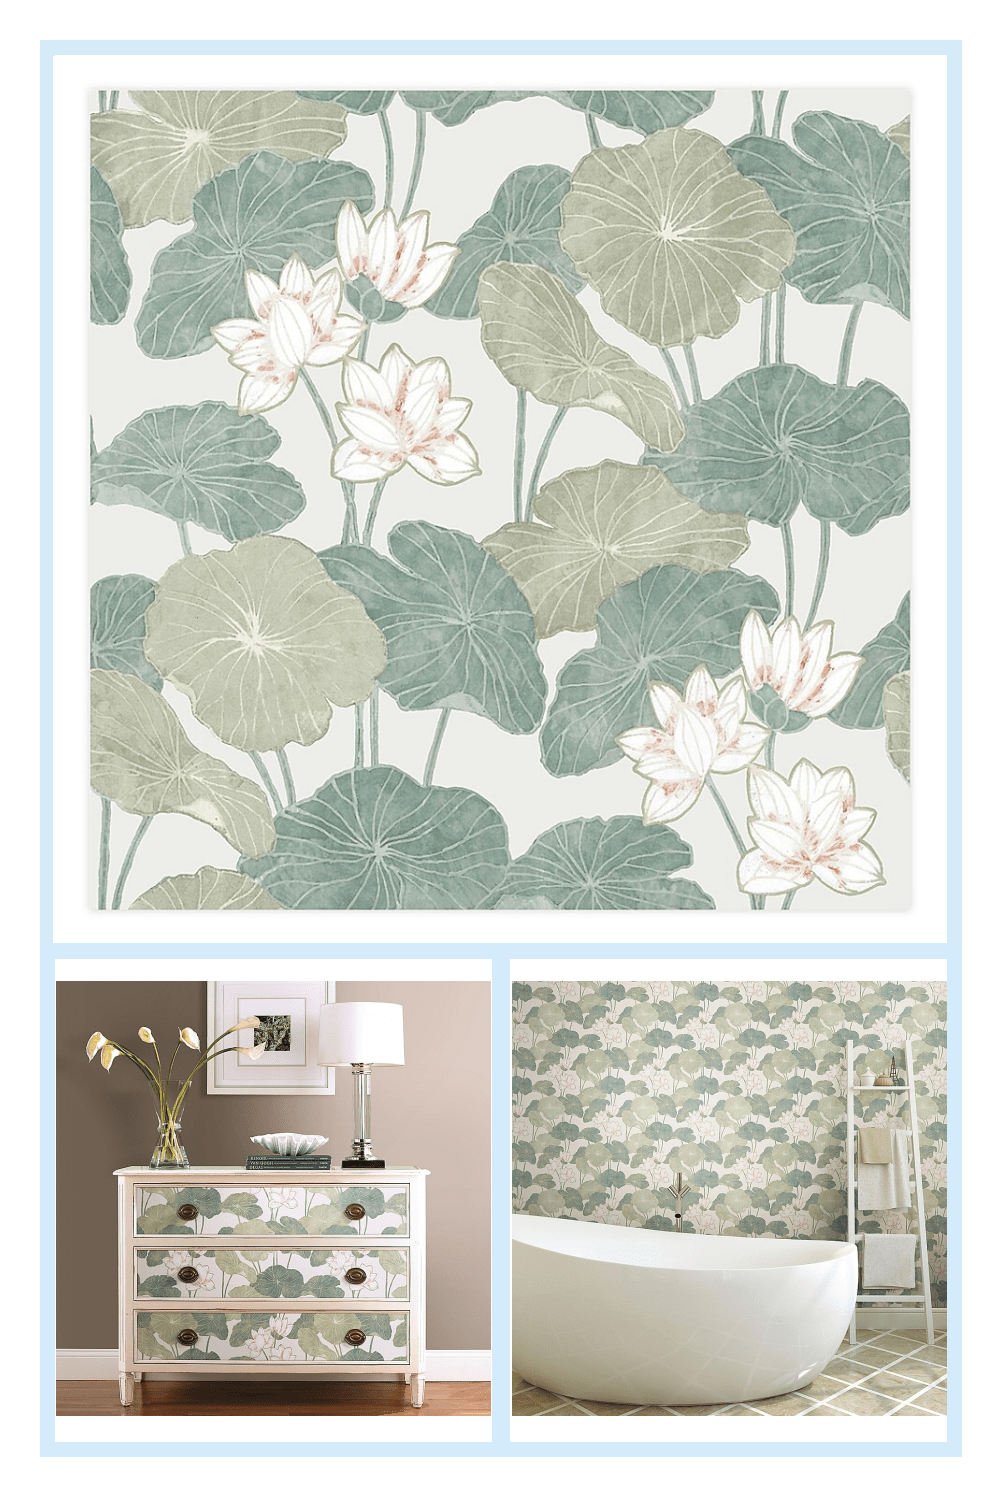 Roommates Lily Pad Peel Stick Wallpaper Bed Bath Beyond Lily Pads Peel And Stick Wallpaper Wall Decor Decals